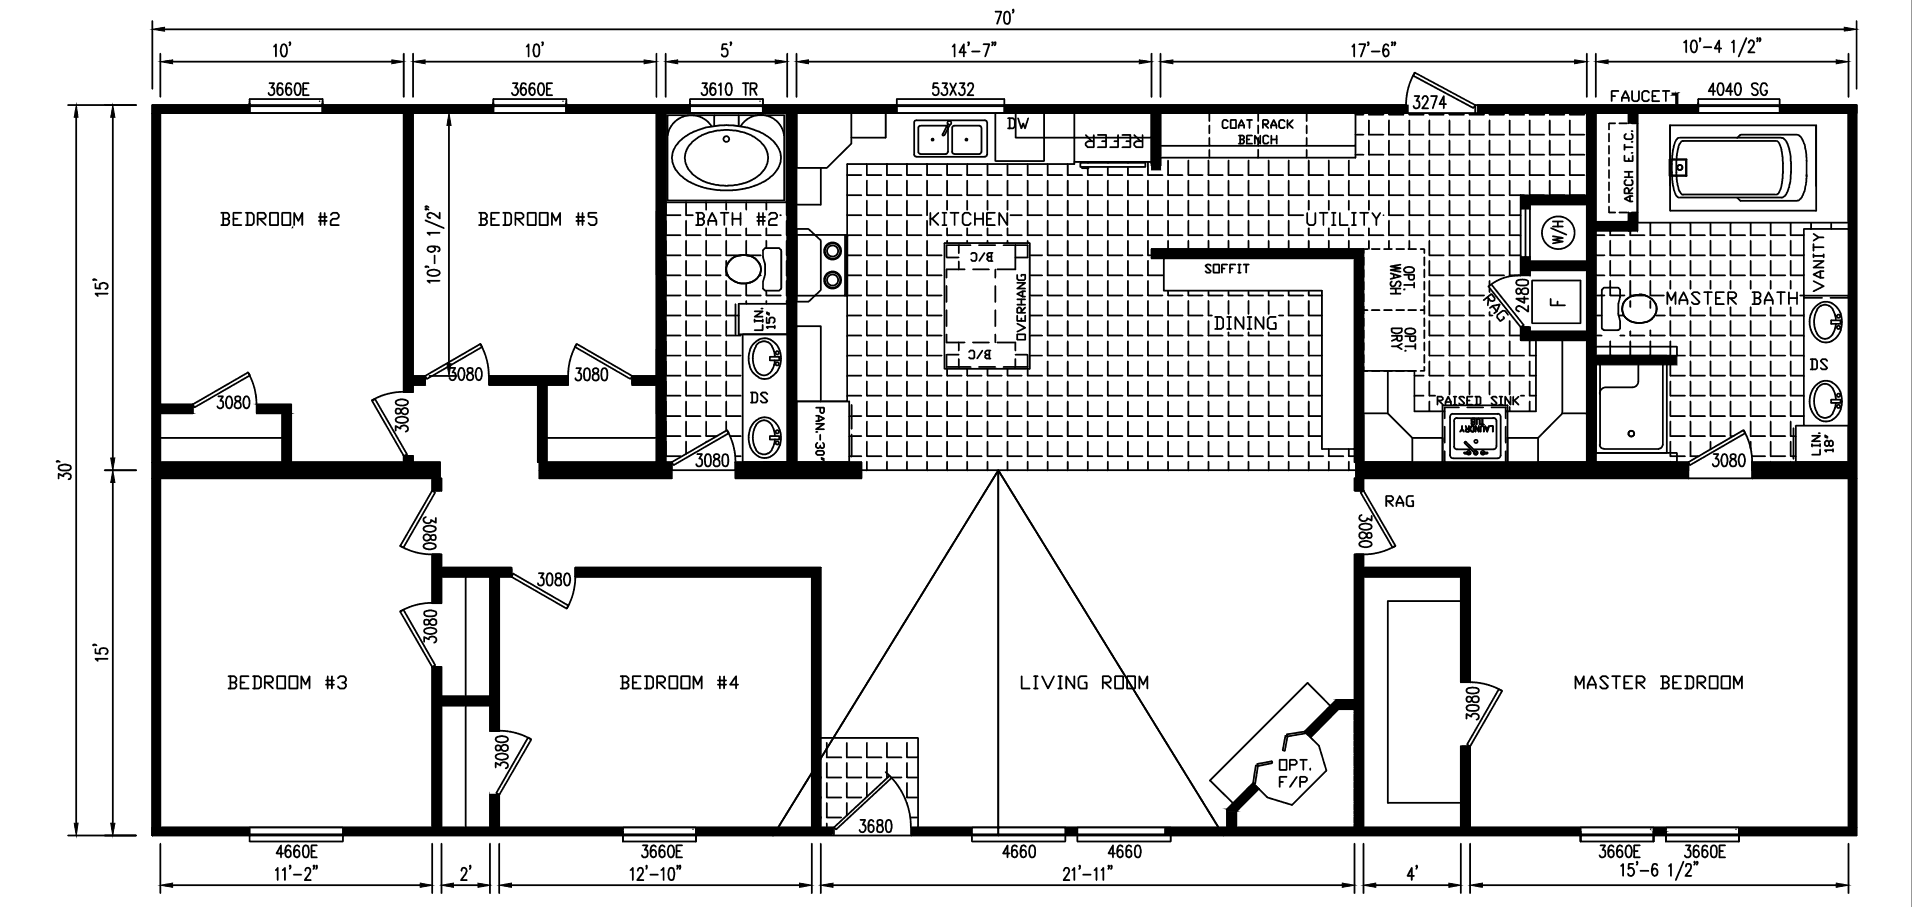 Floor Plan for house model Oak Hill by Pratt